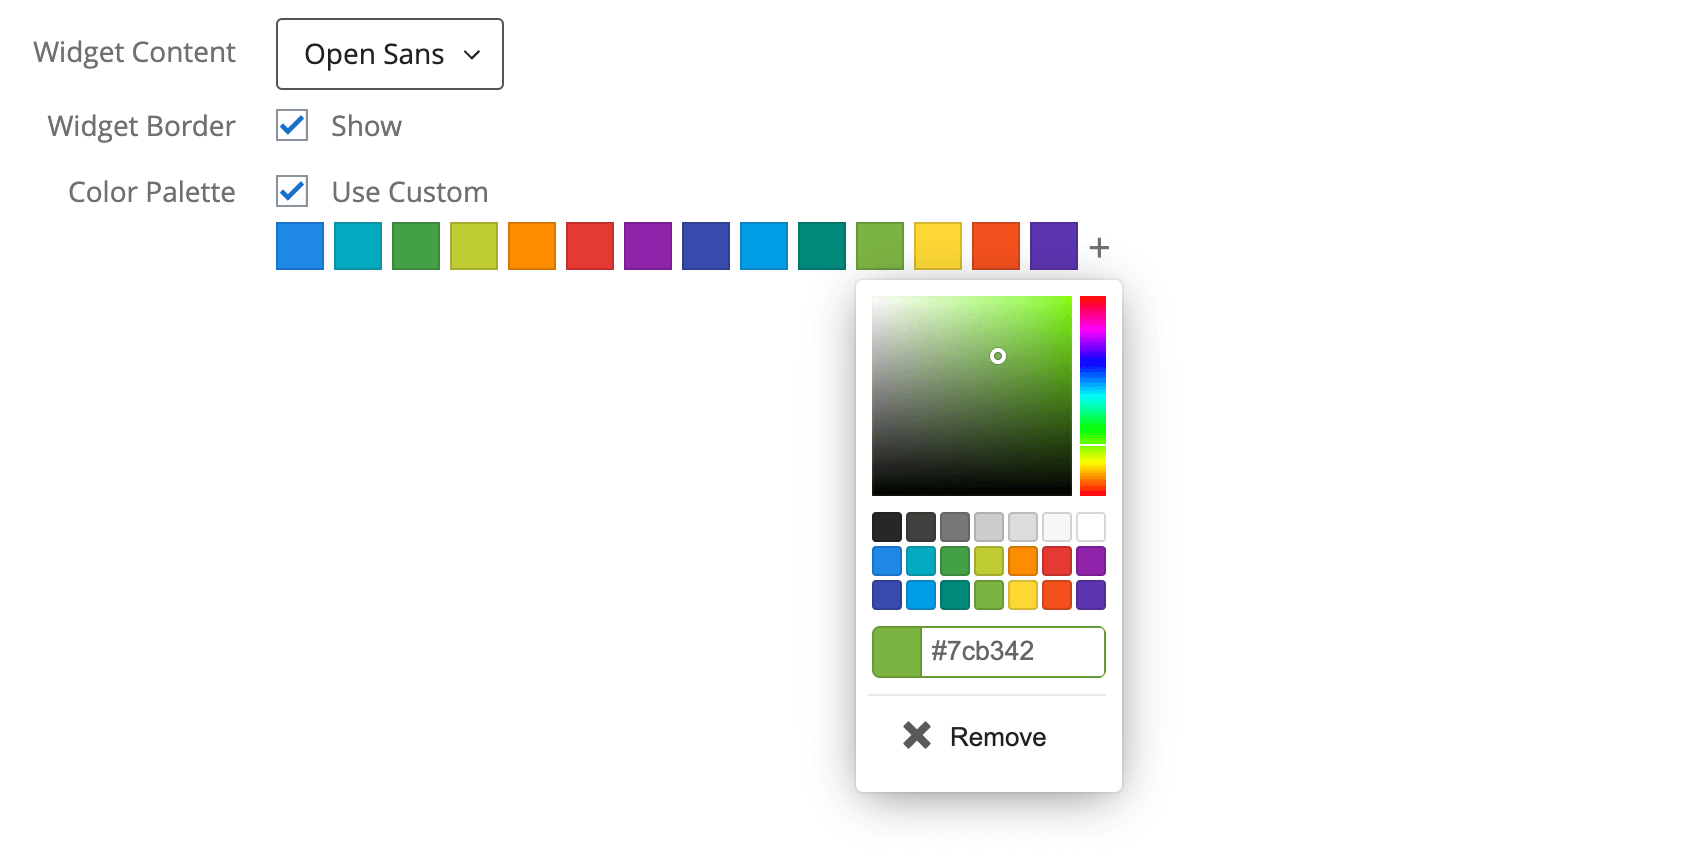 Palette color expanded with Remove option indicated